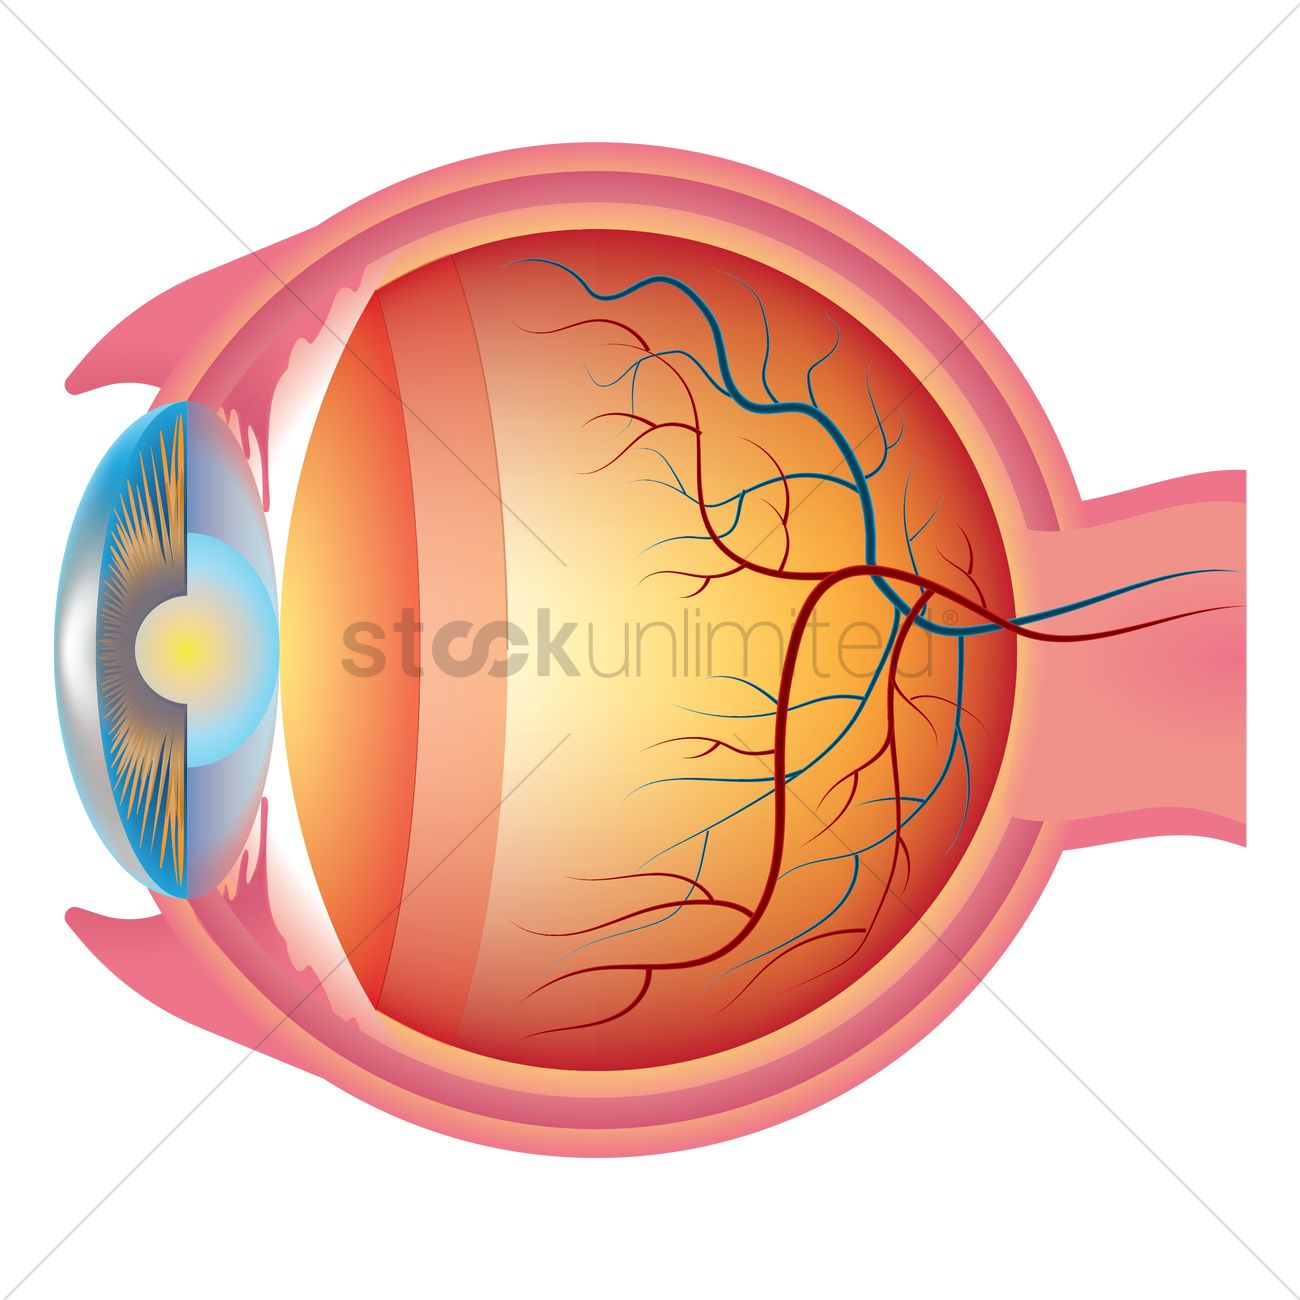 Eyeball anatomy Vector Image - 1866010 | StockUnlimited